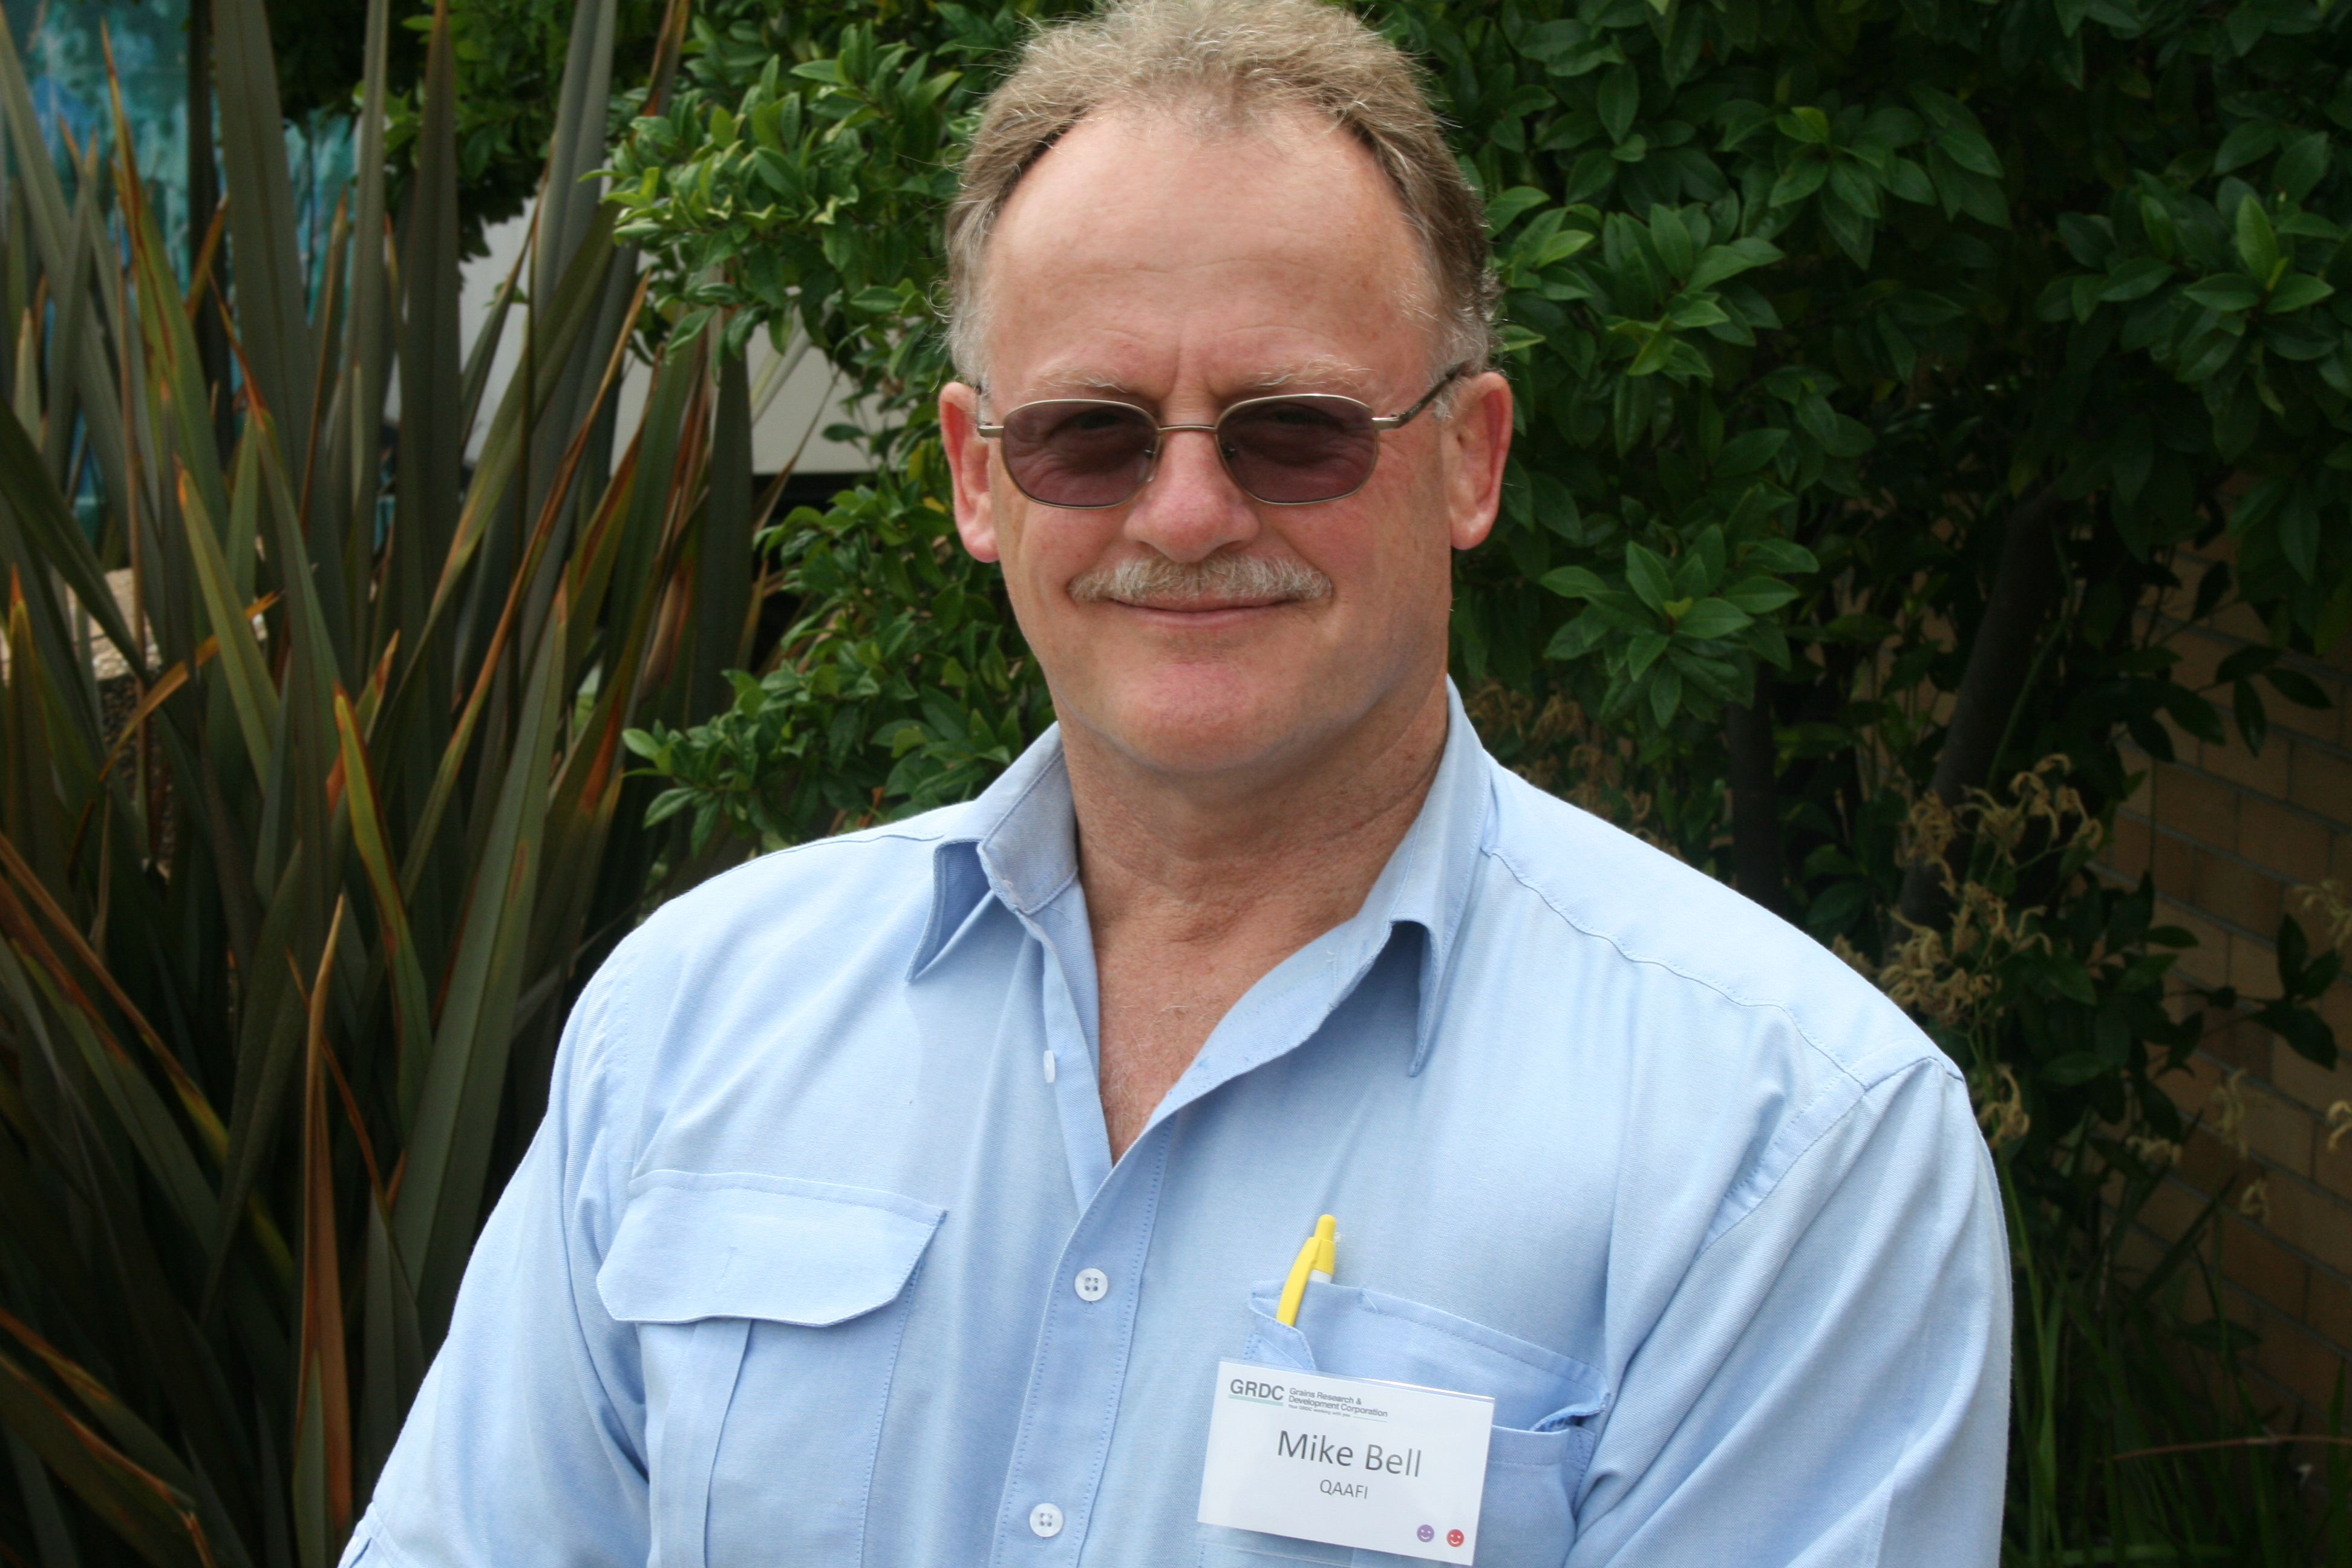 Image of Mike Bell from the Queensland Alliance for Agriculture and Food Innovation (QAAFI).